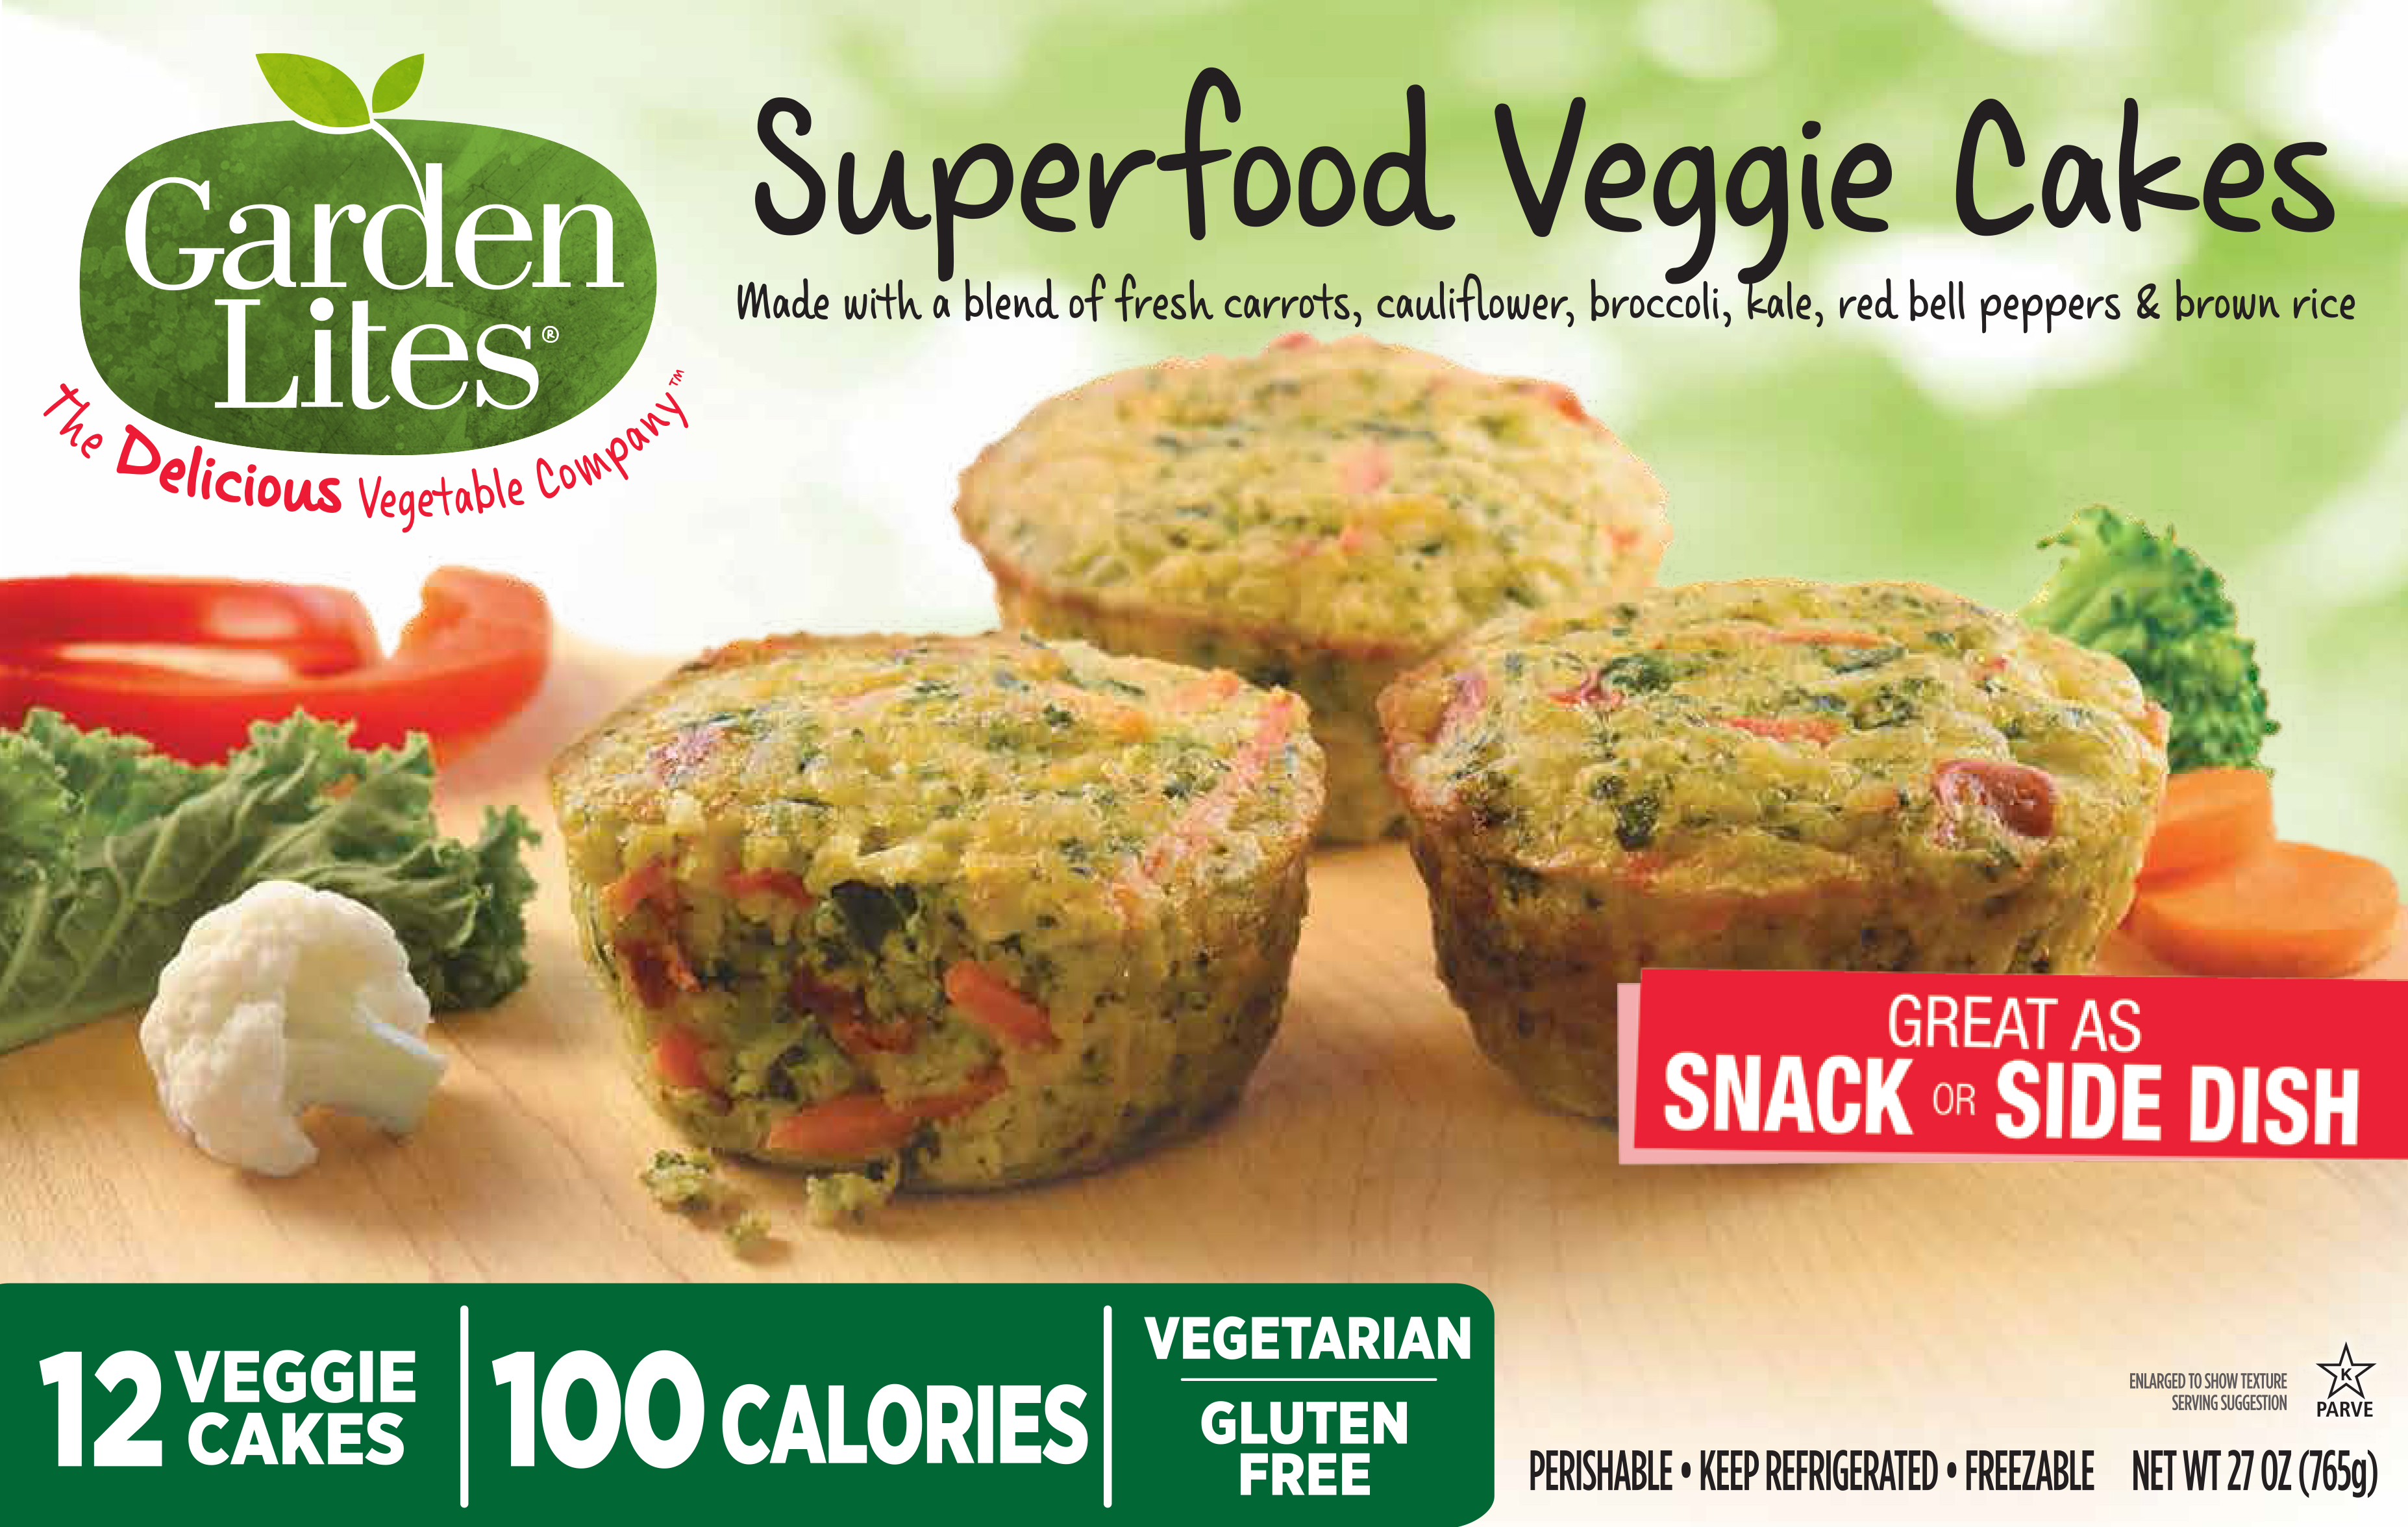 Superfood Veggie Cakes